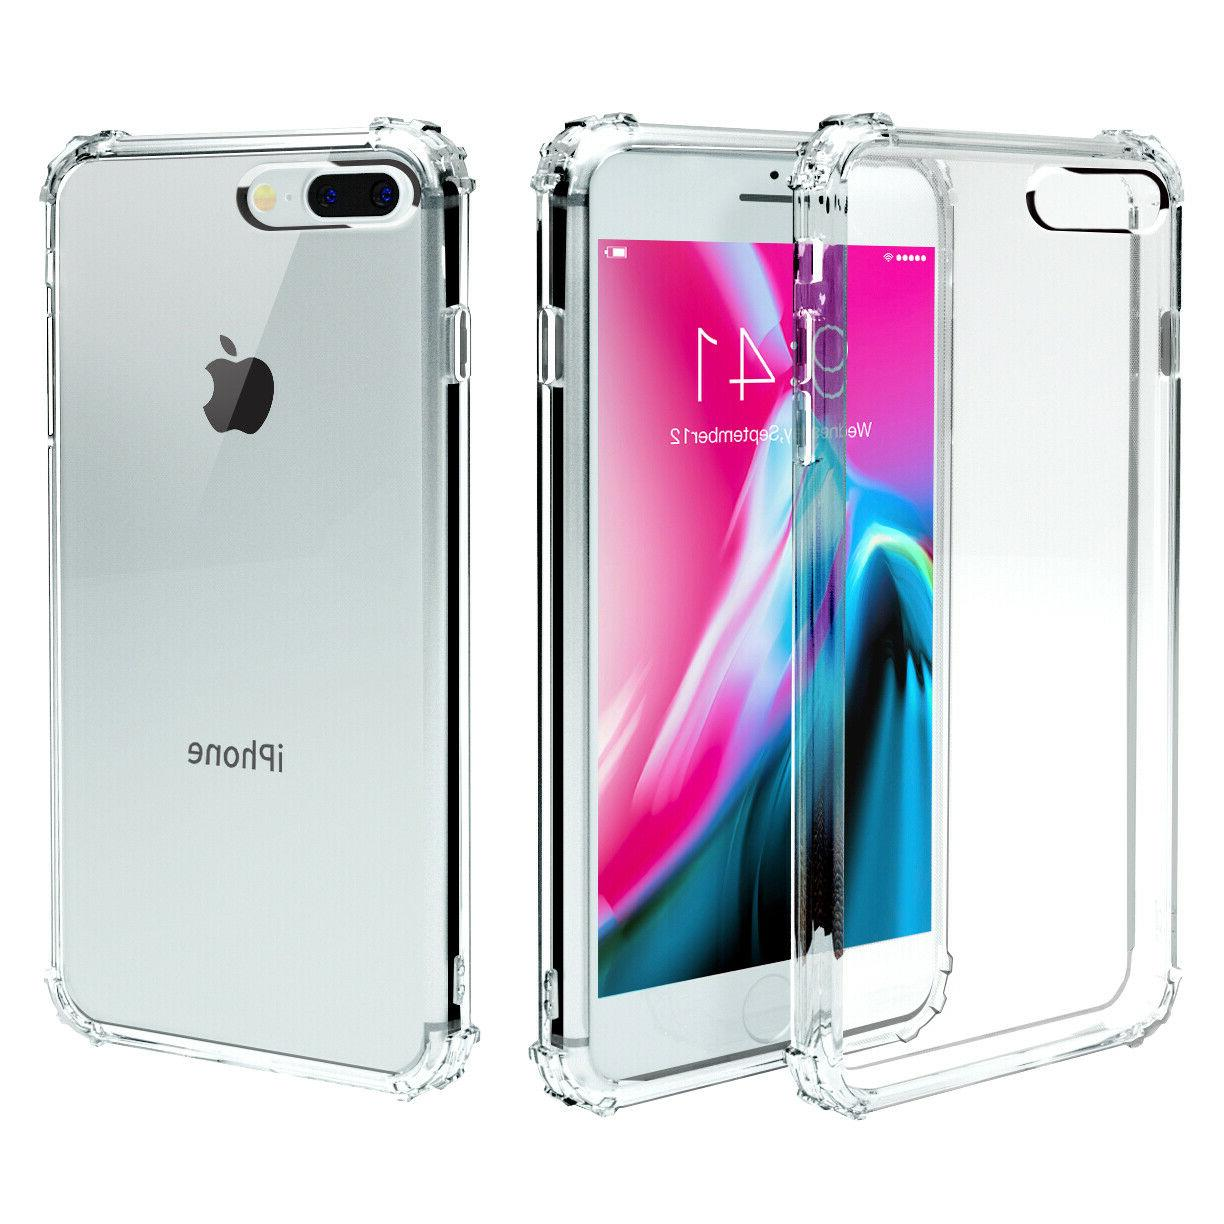 Protector Max Case 7 8 XS Cover